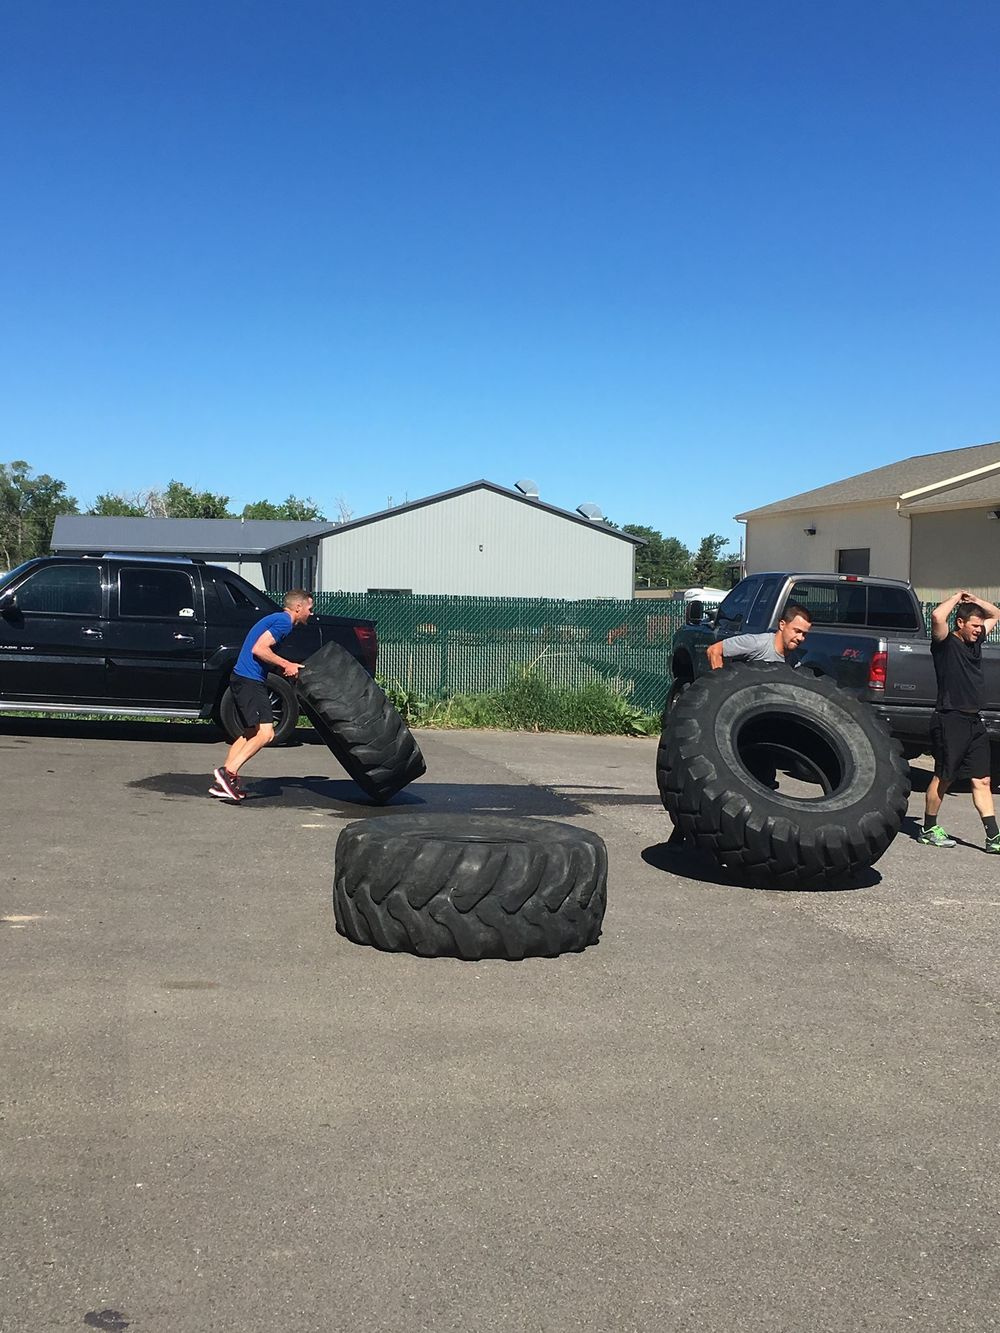 Who wants to do some Tire Flips?!